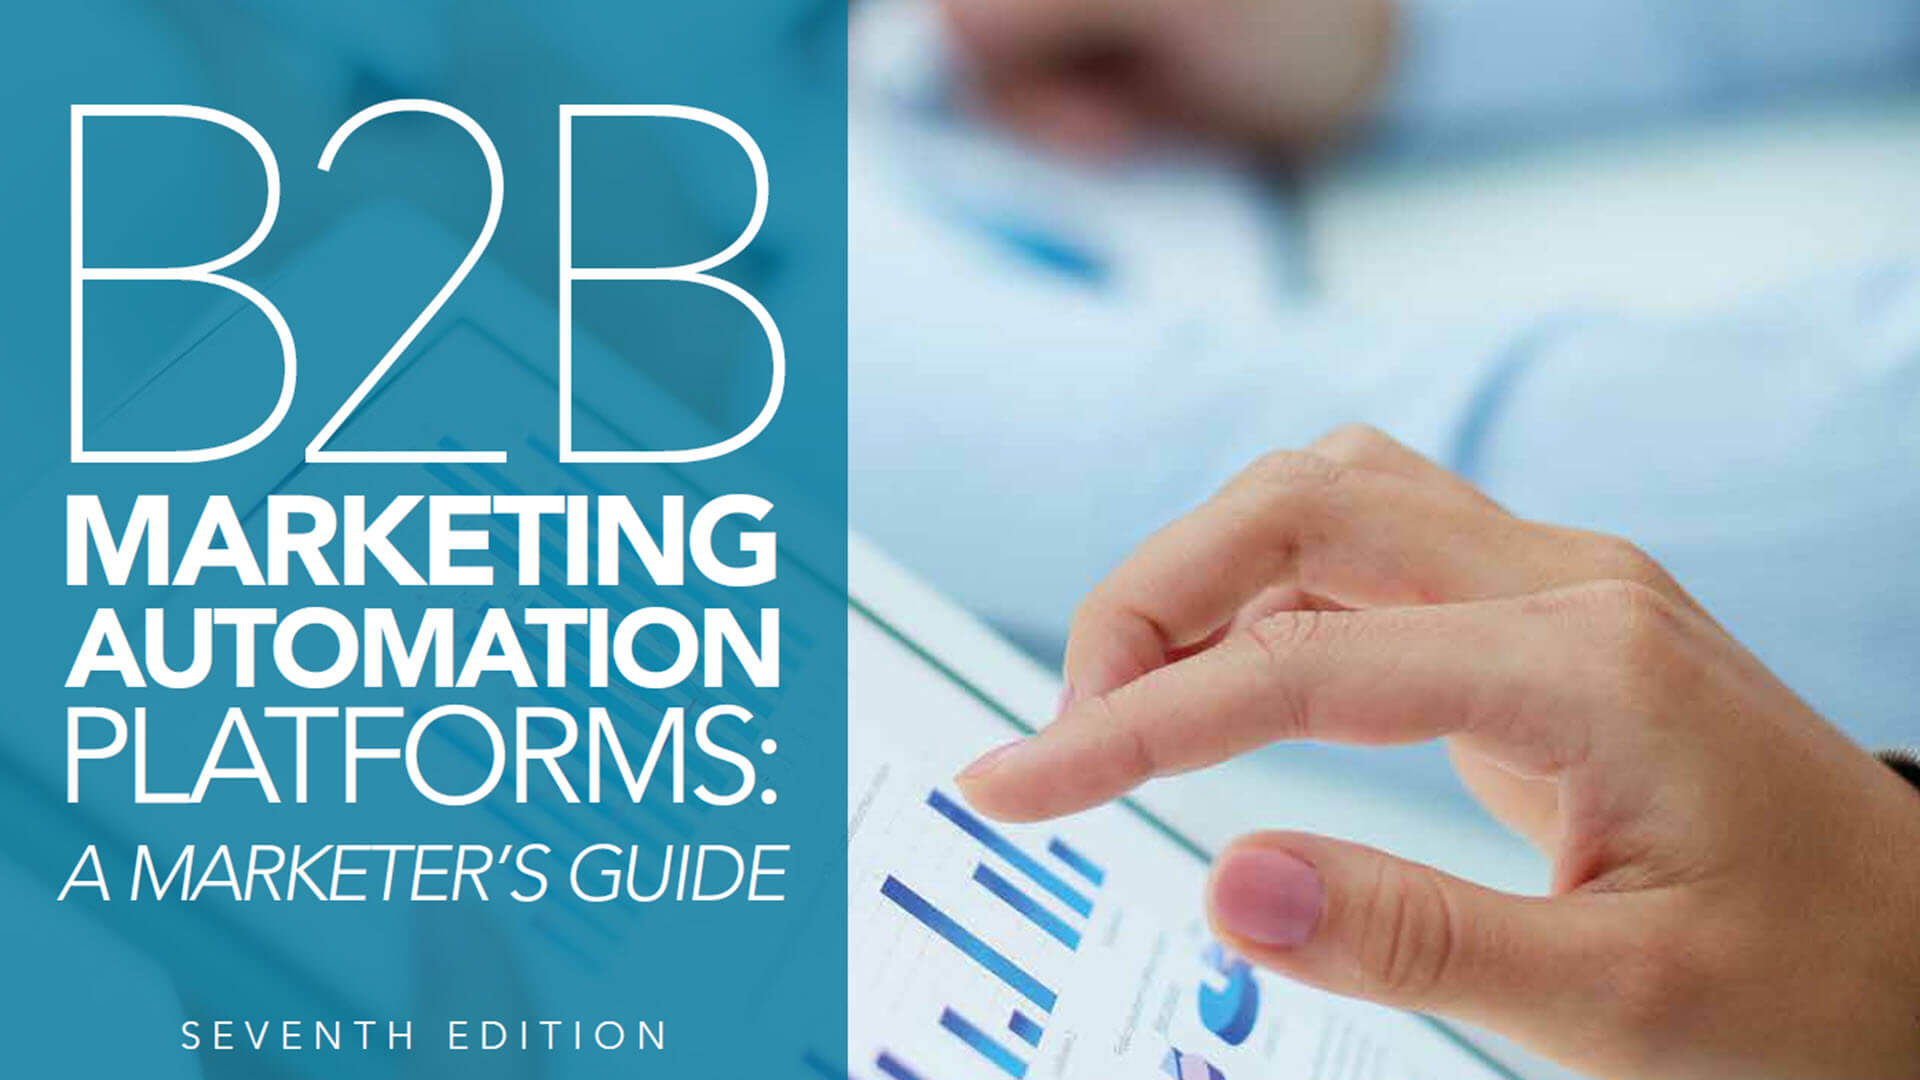 B2B Marketing Automation Platforms Marketer's Guide–Updated for 2019!